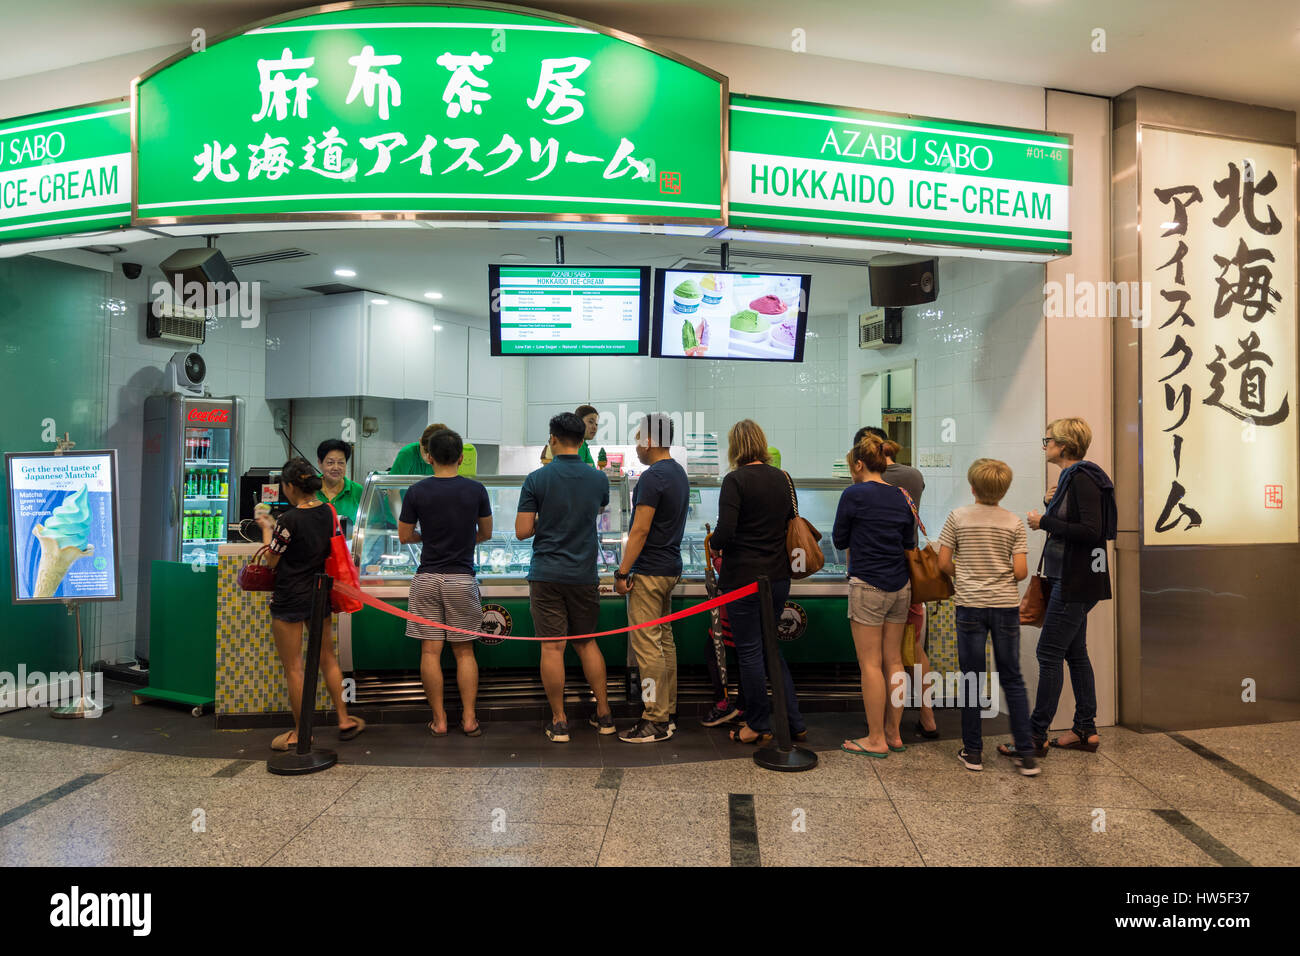 People lining up at a Japanese ice-cream shop on Clarke Quay, Singapore - Stock Image